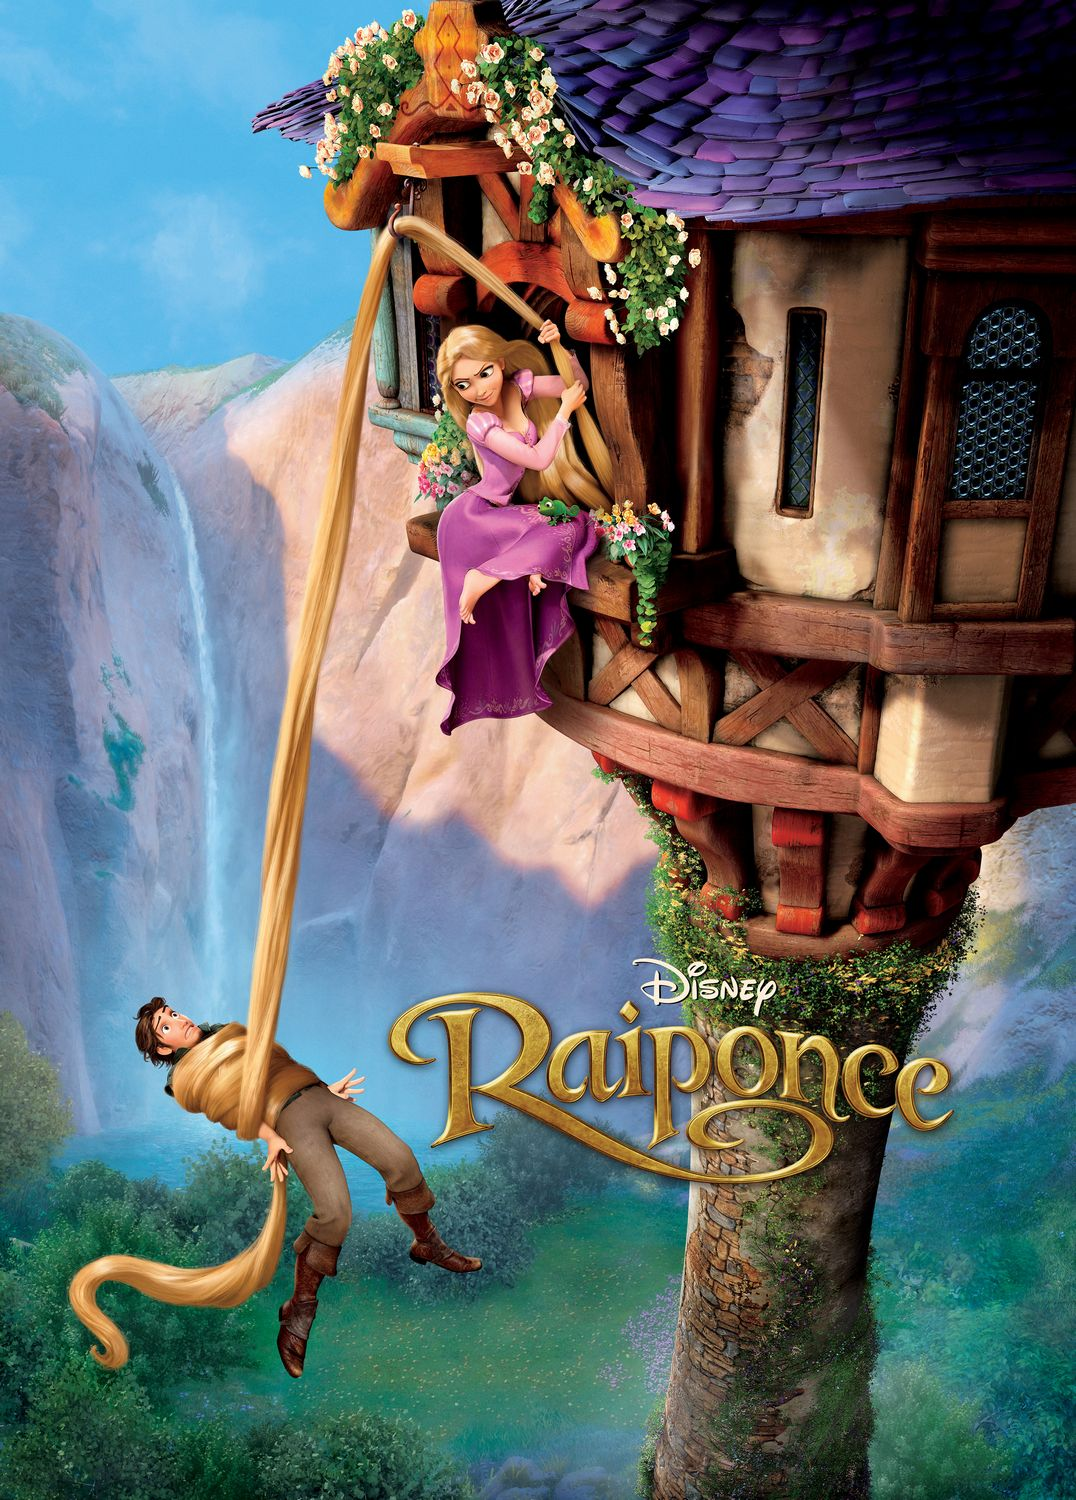 301 moved permanently - Raiponce dessin anime ...